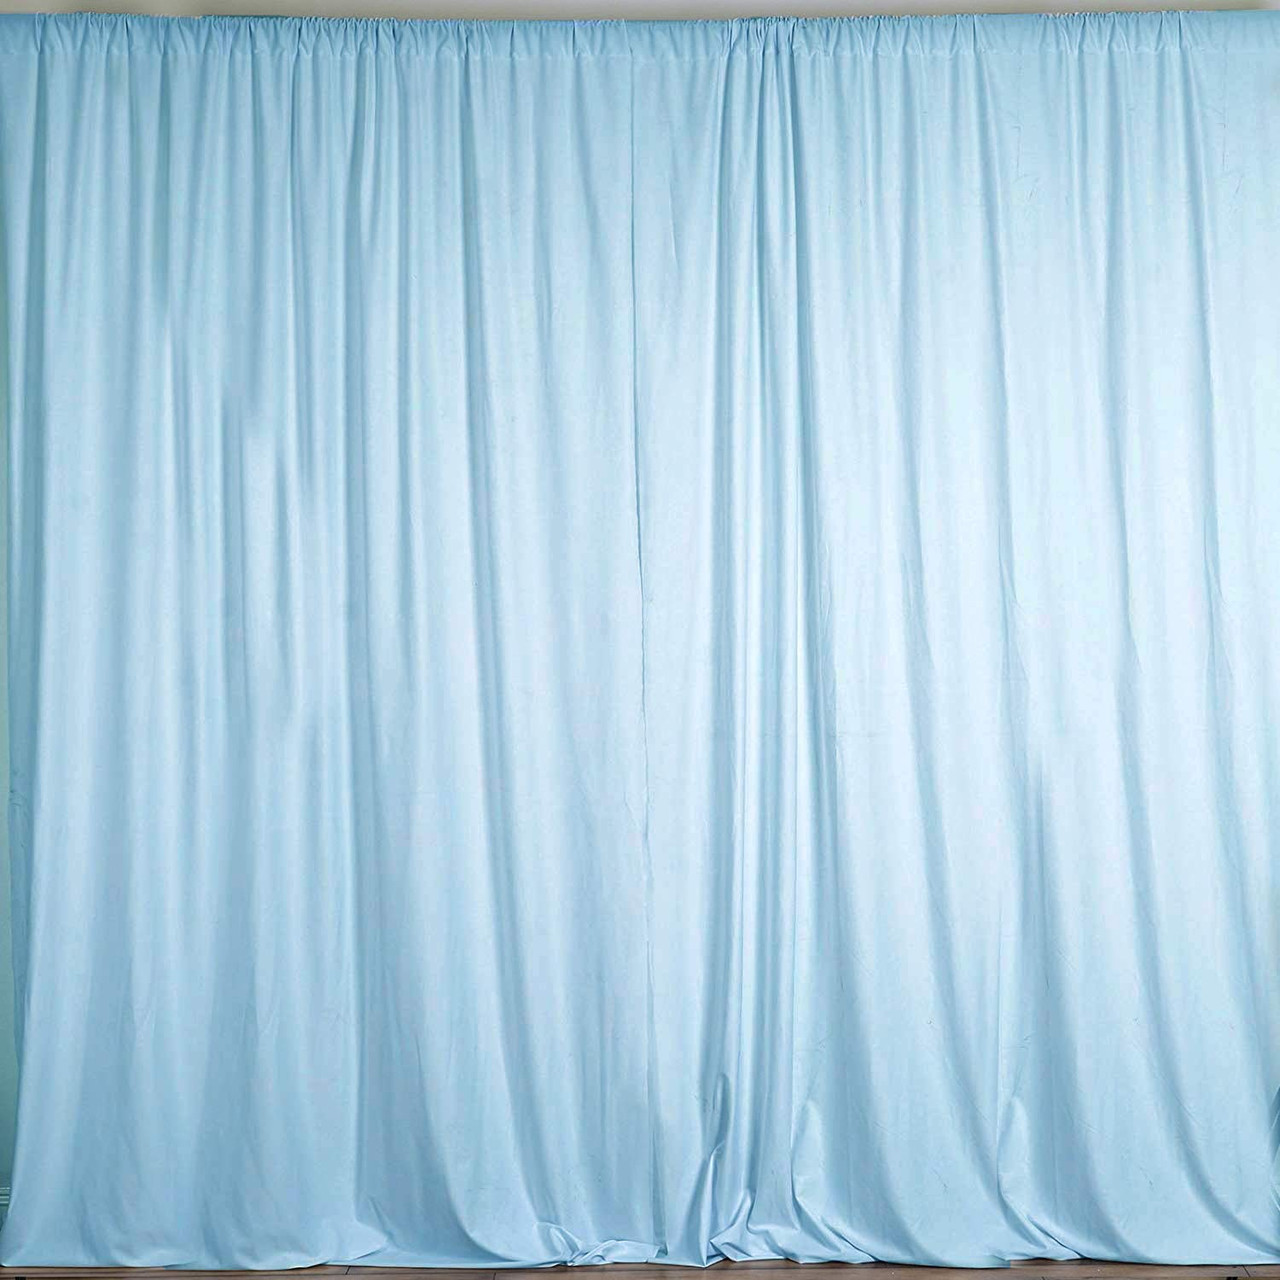 2 Pack 10 Feet Polyester Backdrop Drapes Curtains Panels With Rod Pockets Wedding Ceremony Party Home Window Decorations Light Blue Ak Trading Co